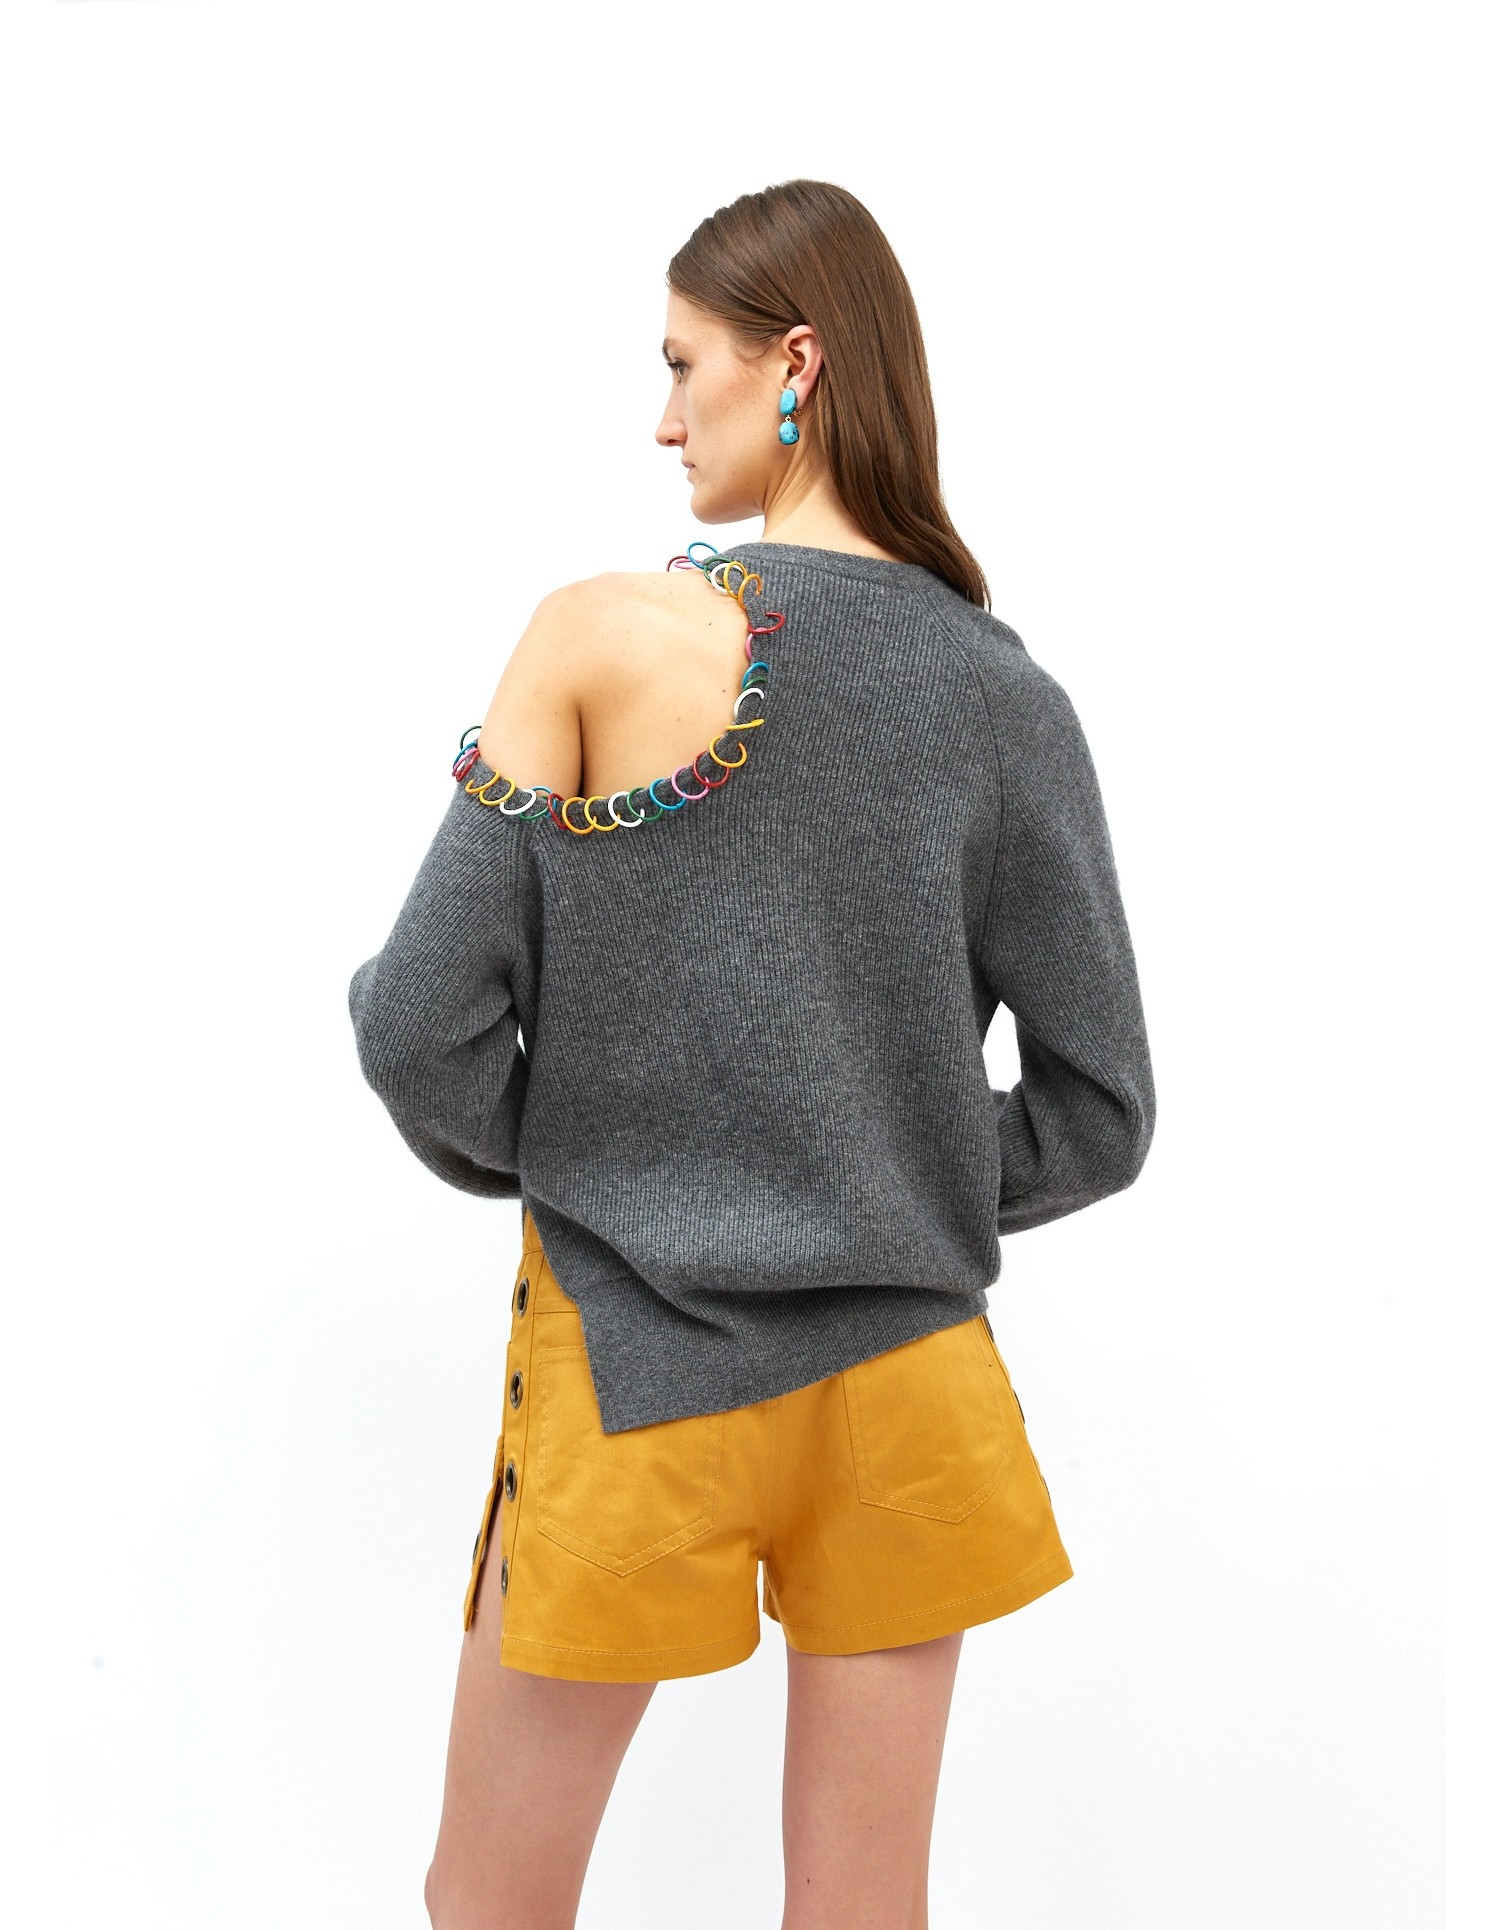 MONSE Pierced Cut Out Shoulder Sweater in Charcoal on Model No Background Full Front View